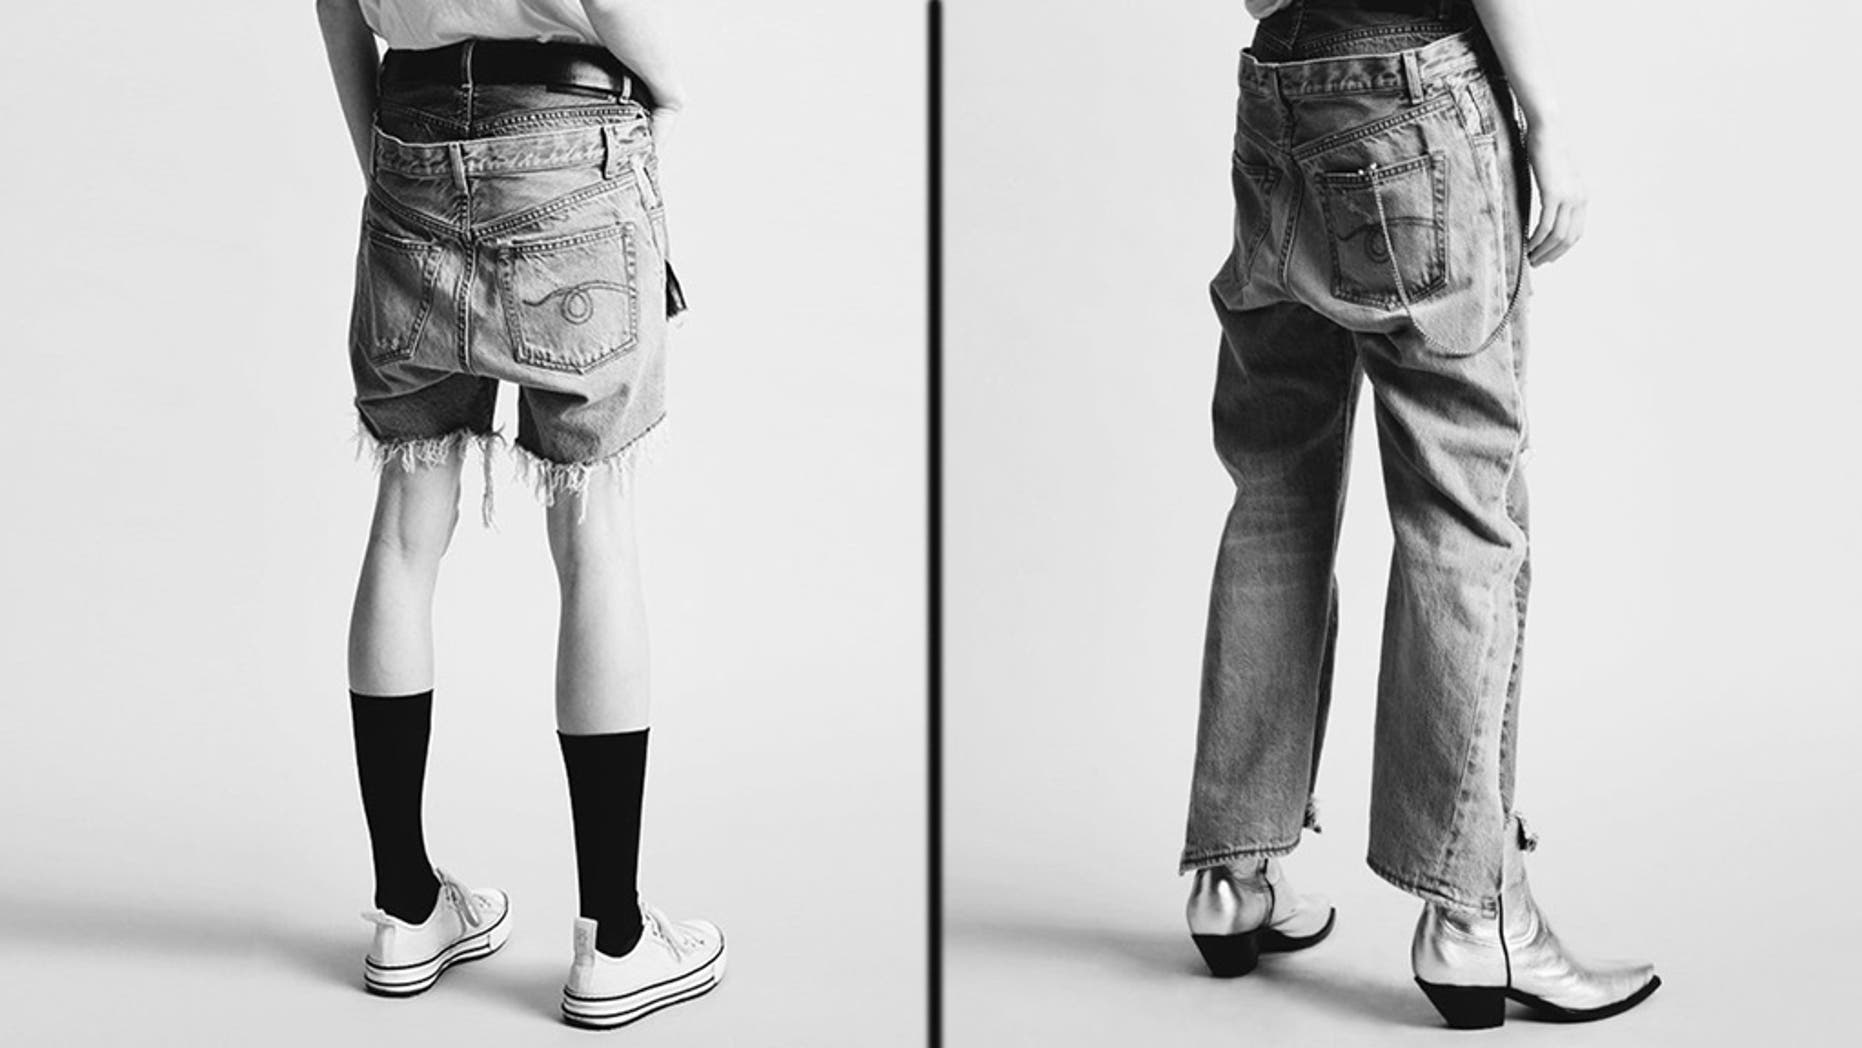 """The """"Double Back"""" shorts and jeans by R13 may be the craziest denim items to hit the market yet."""